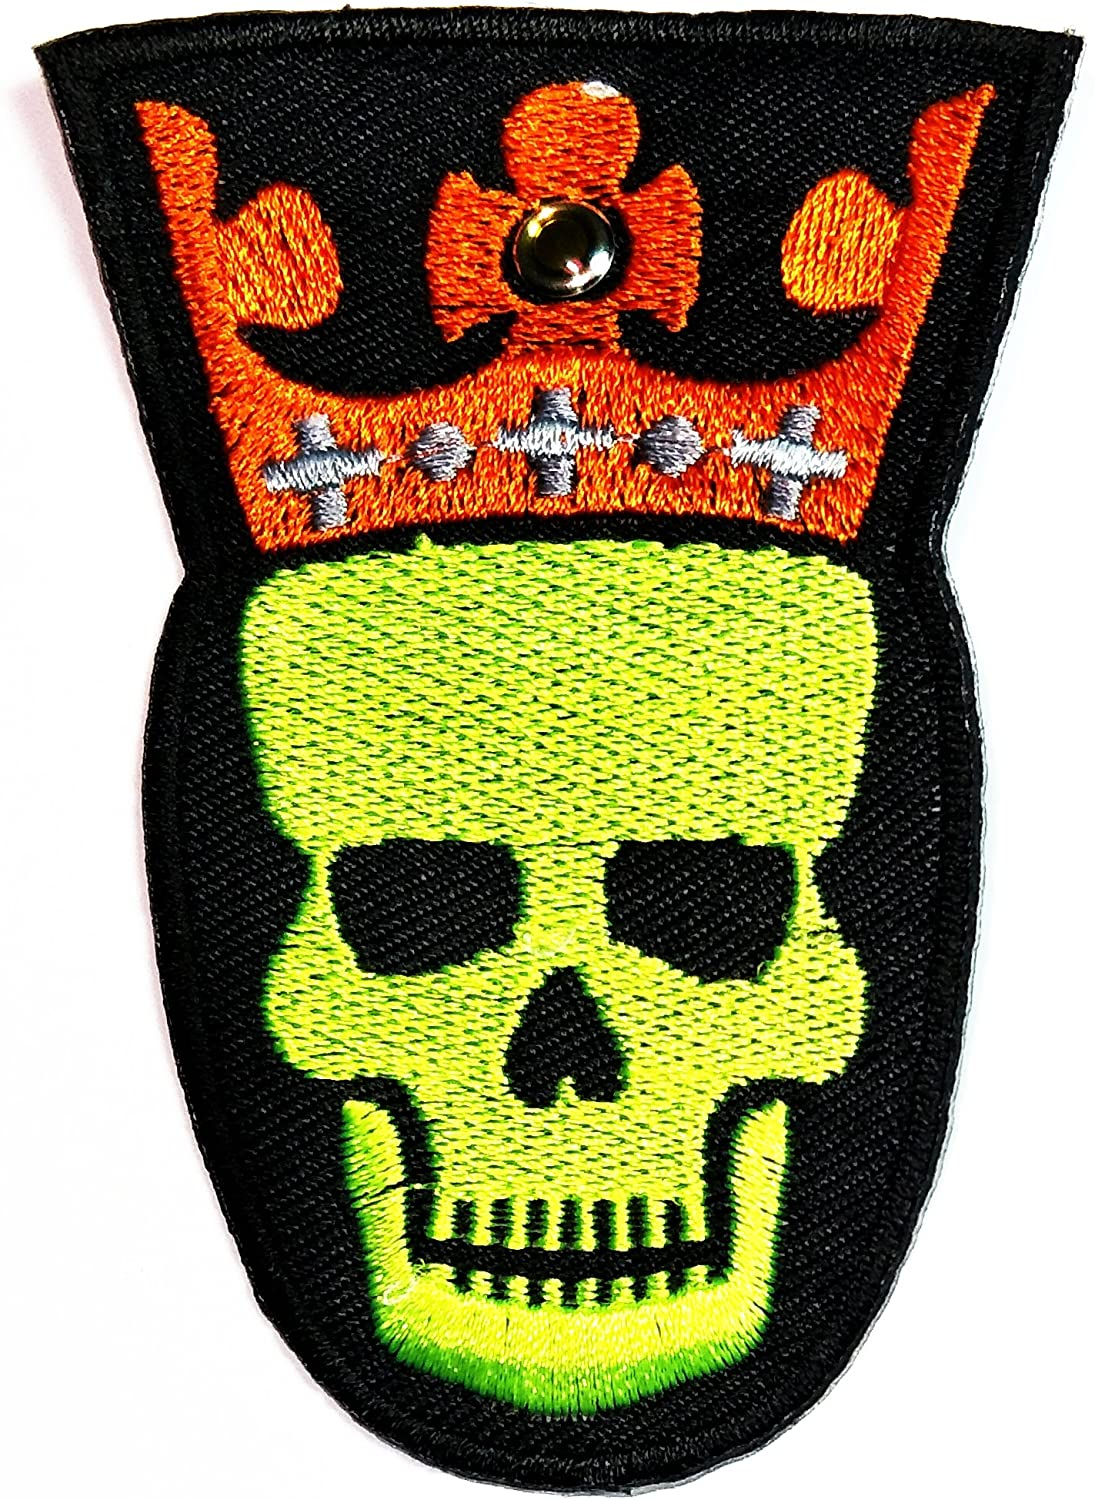 HHO Green Skull Patch DIY Applique Embroidered Sew Iron on Patch Skull logo Halloween Iron On Patch Sew Iron on Kids Craft Patch for Bags Jackets Jeans Clothes